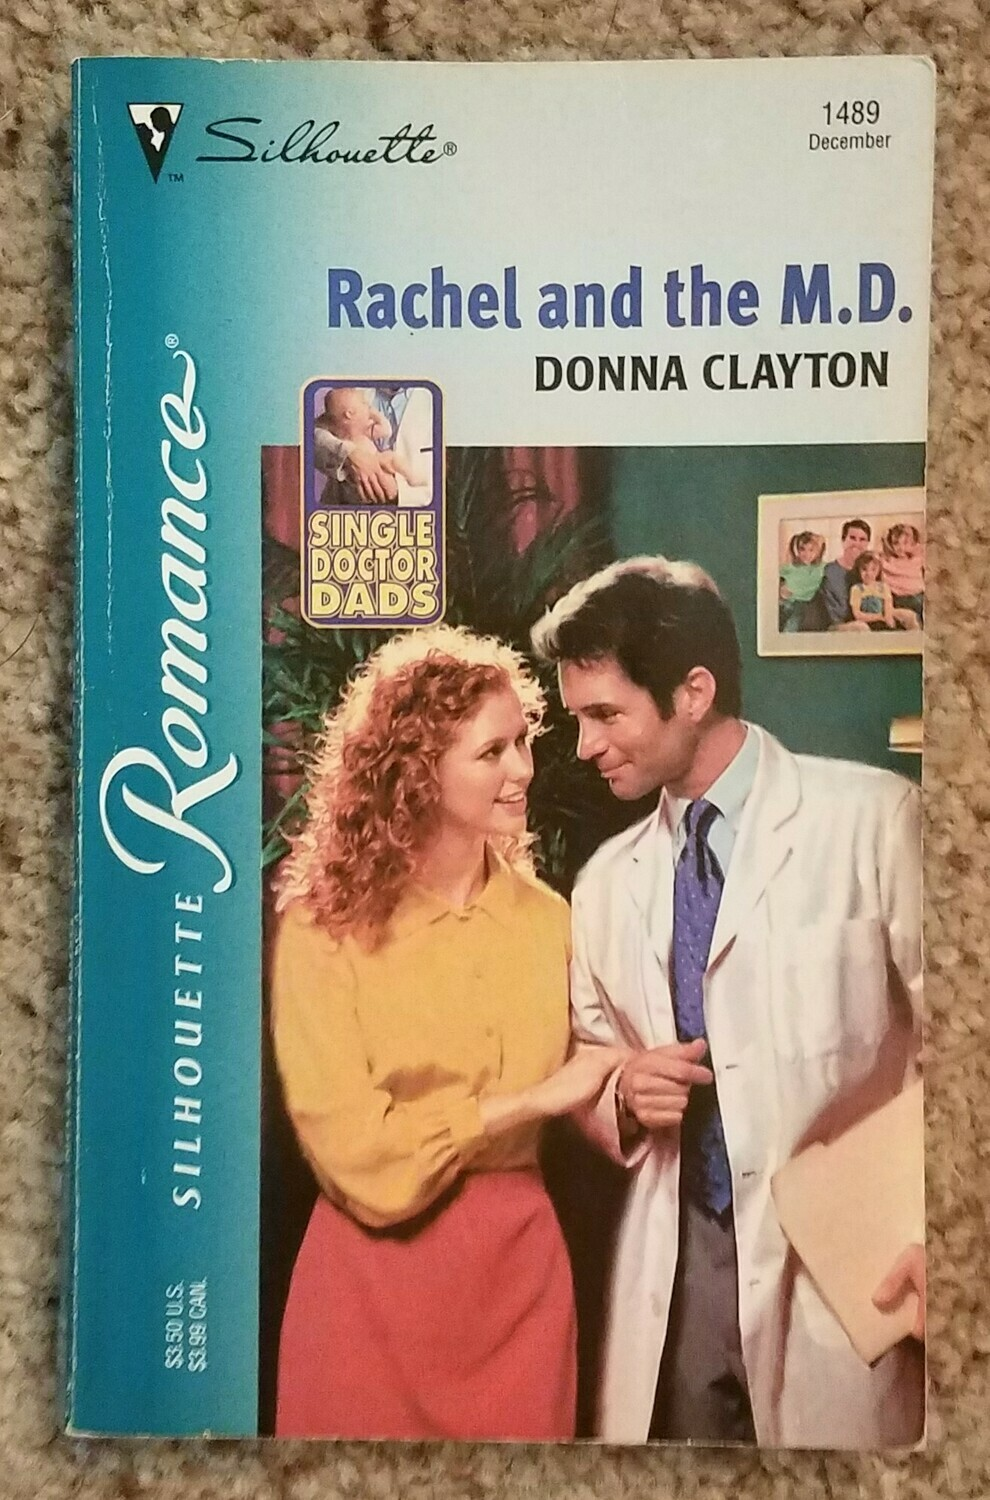 Rachel and the M.D. by Donna Clayton